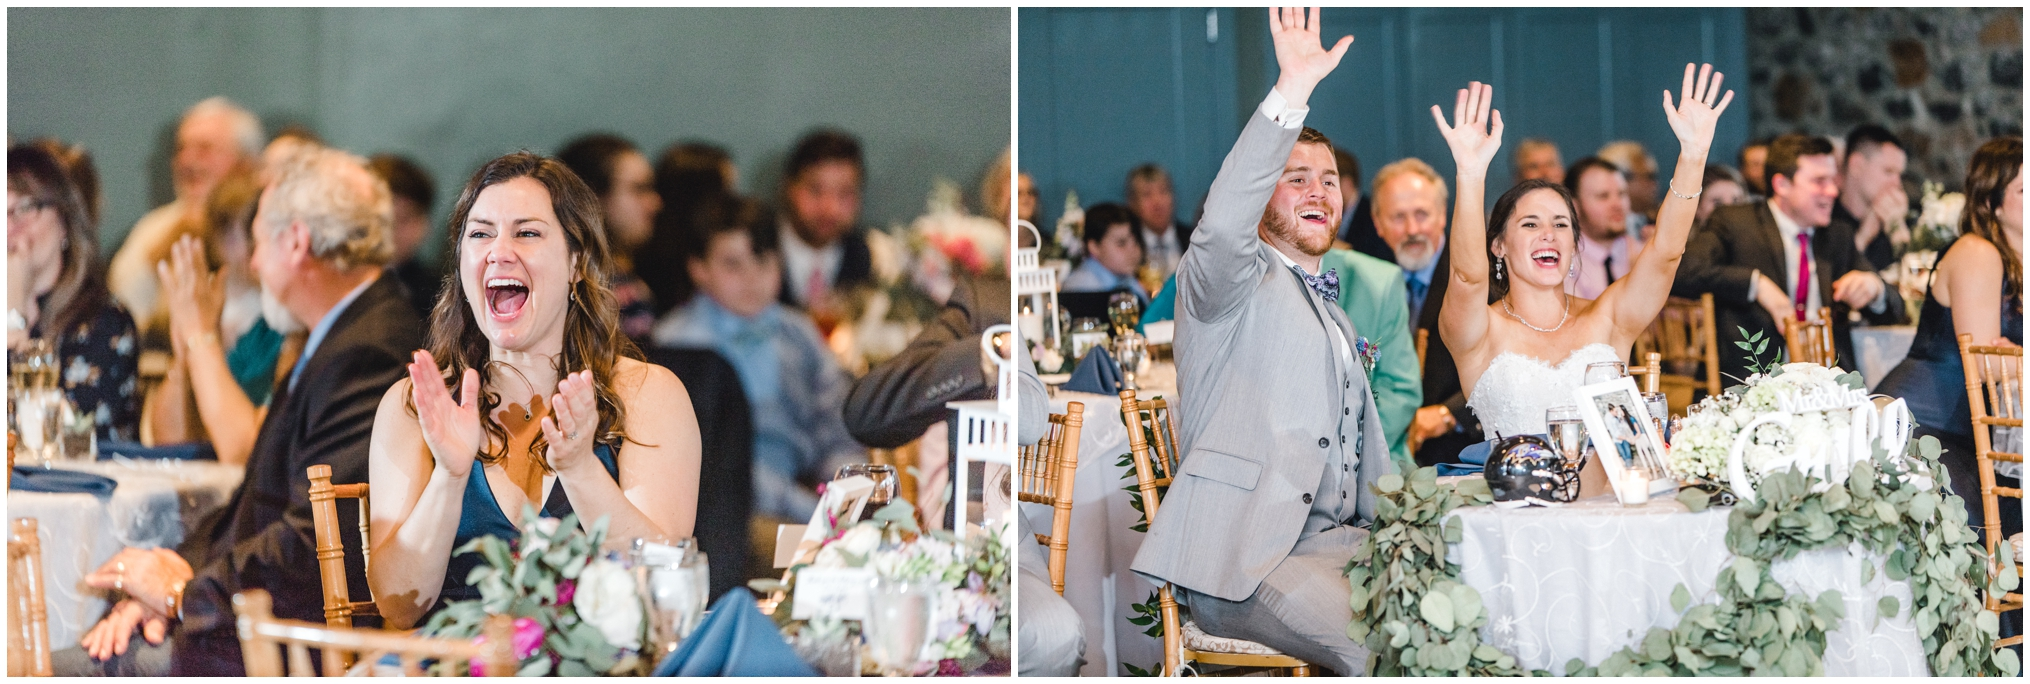 Krista Brackin Photography | April Wedding at The Carriage House at Rockwood Park_0110.jpg